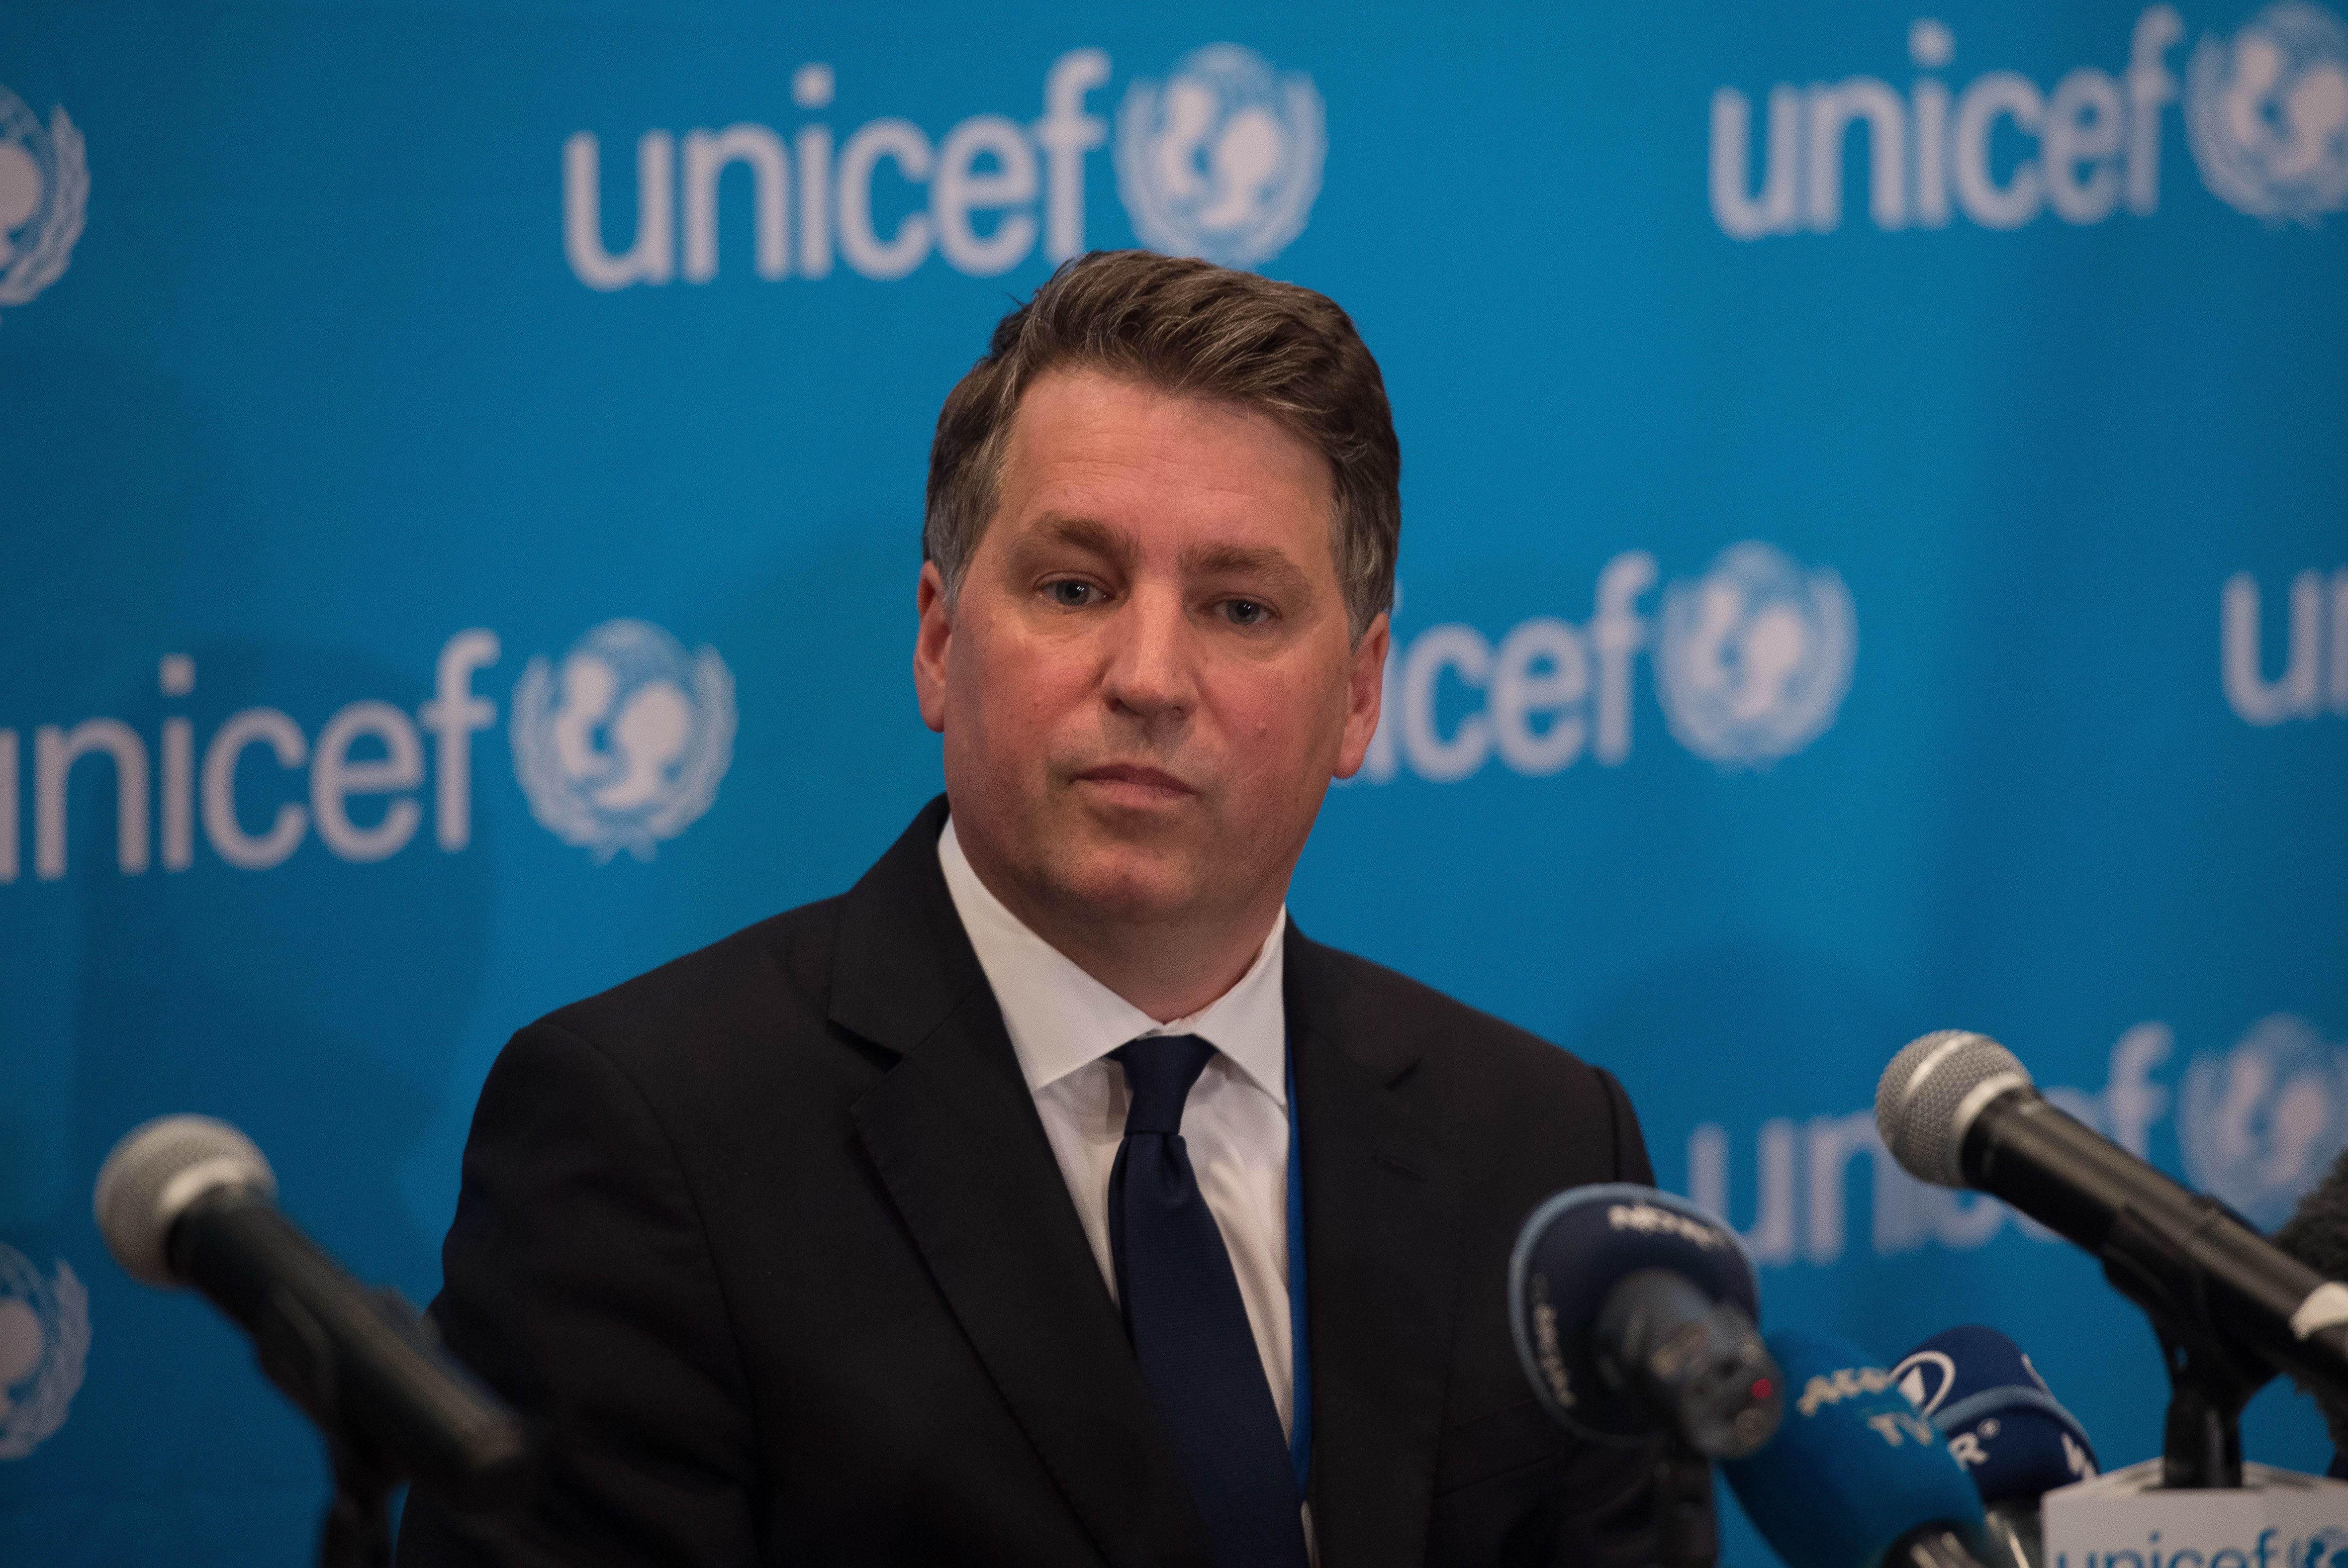 Justin Forsyth announces Unicef resignation